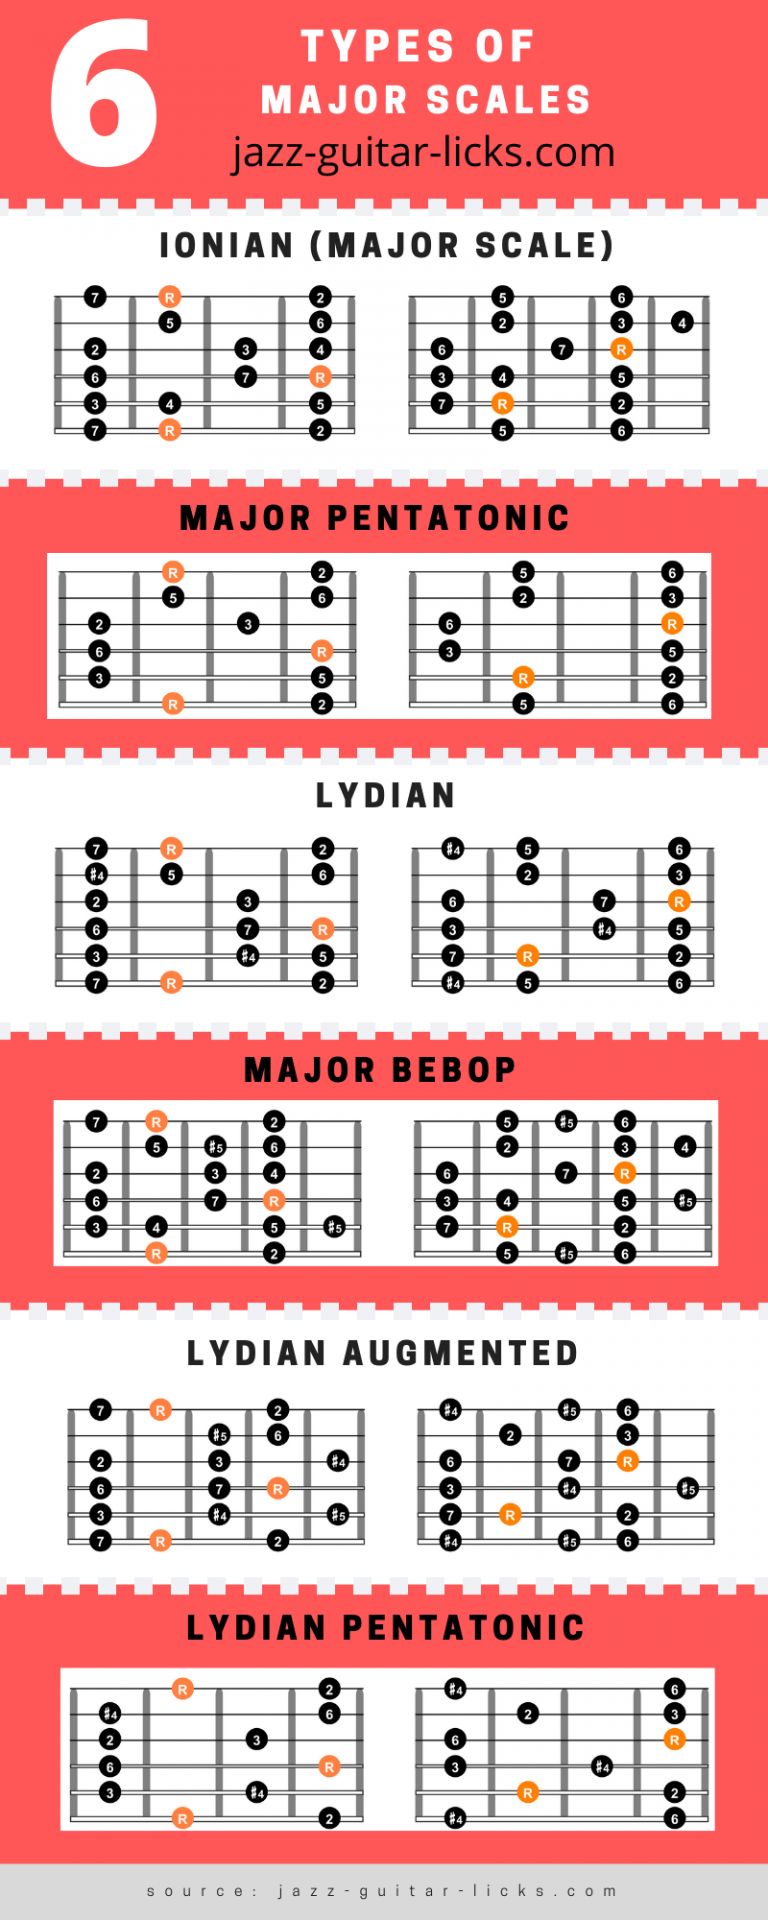 6 types of major scales on guitar 2